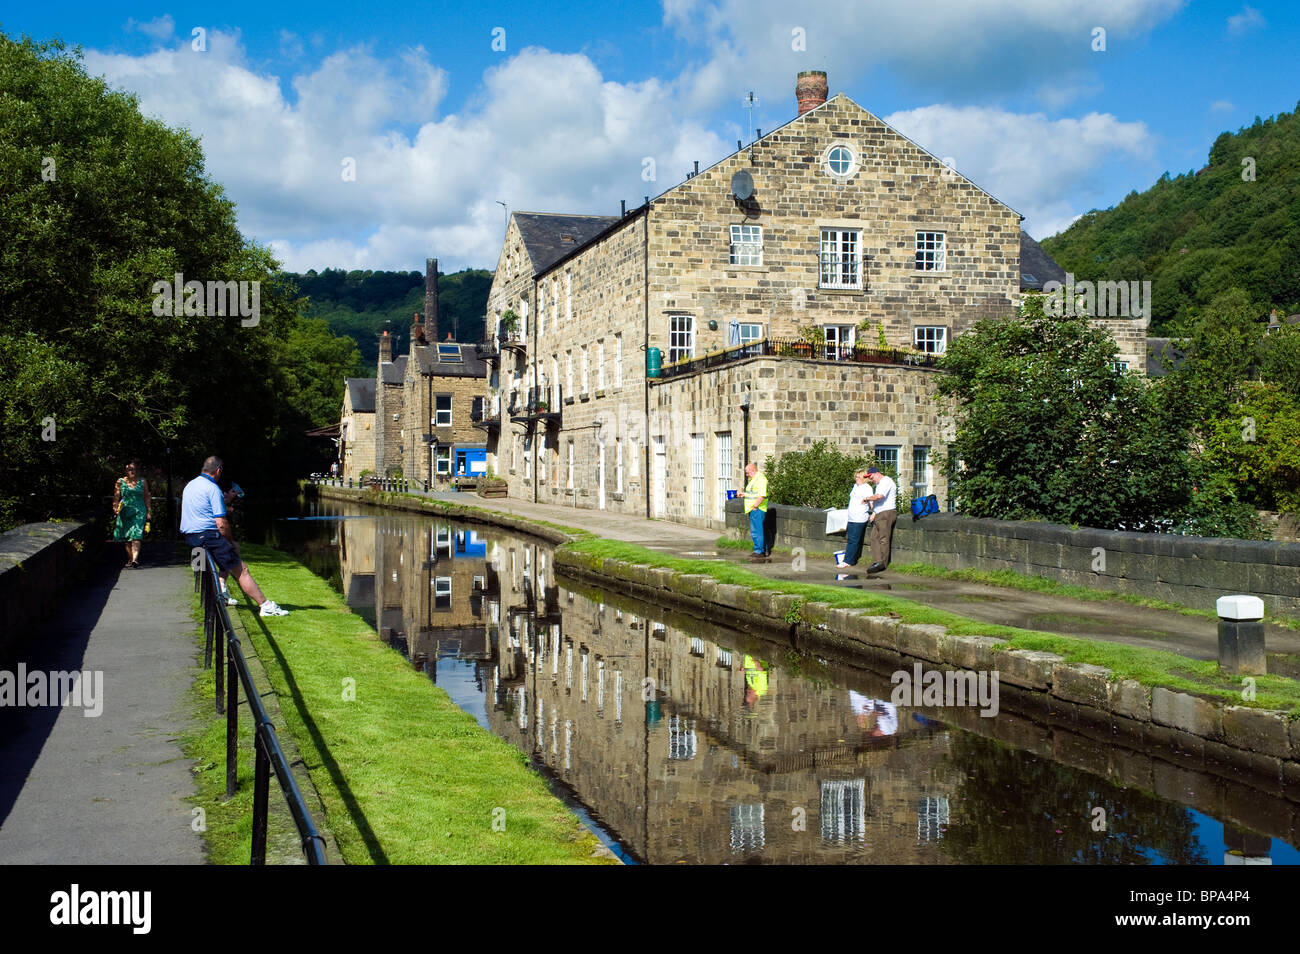 Rochdale Canal, Hebden Bridge, Calder Valley, West Yorkshire, England, United Kingdom. August 2010. - Stock Image